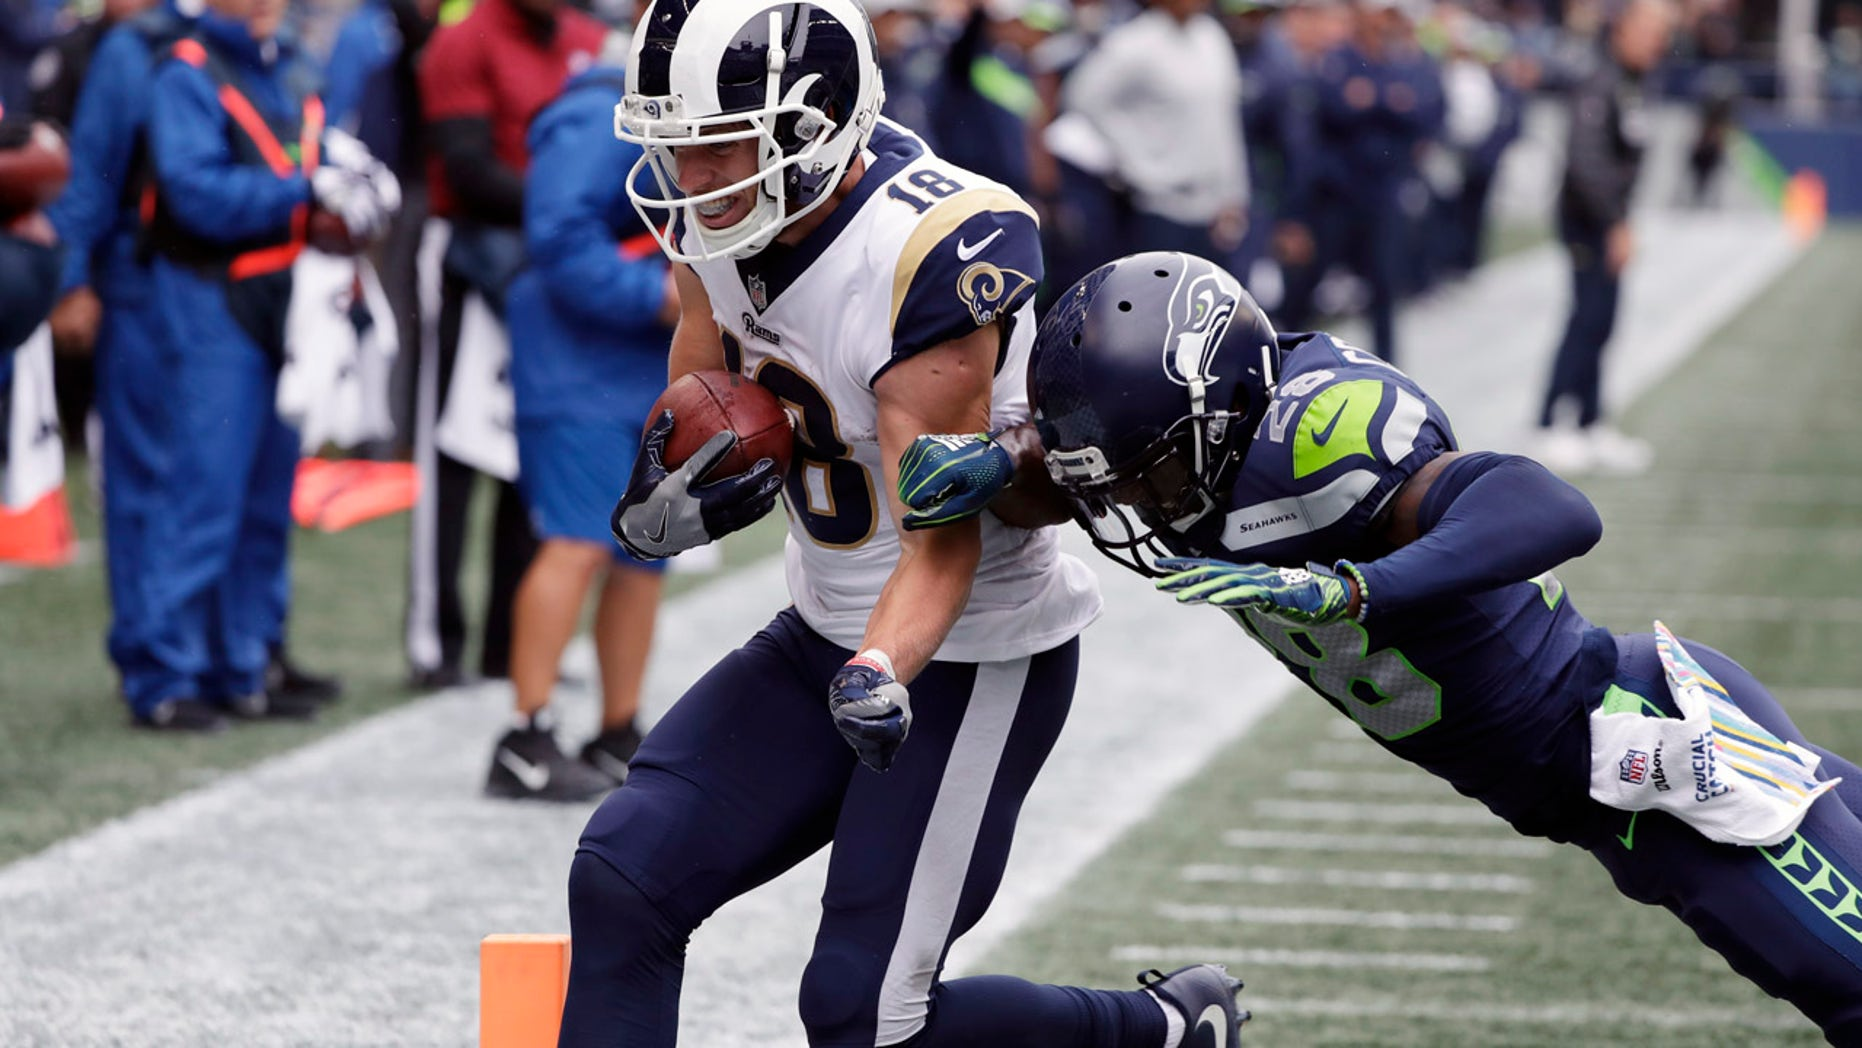 Cooper Kupp carted off with knee injury, returns in second half